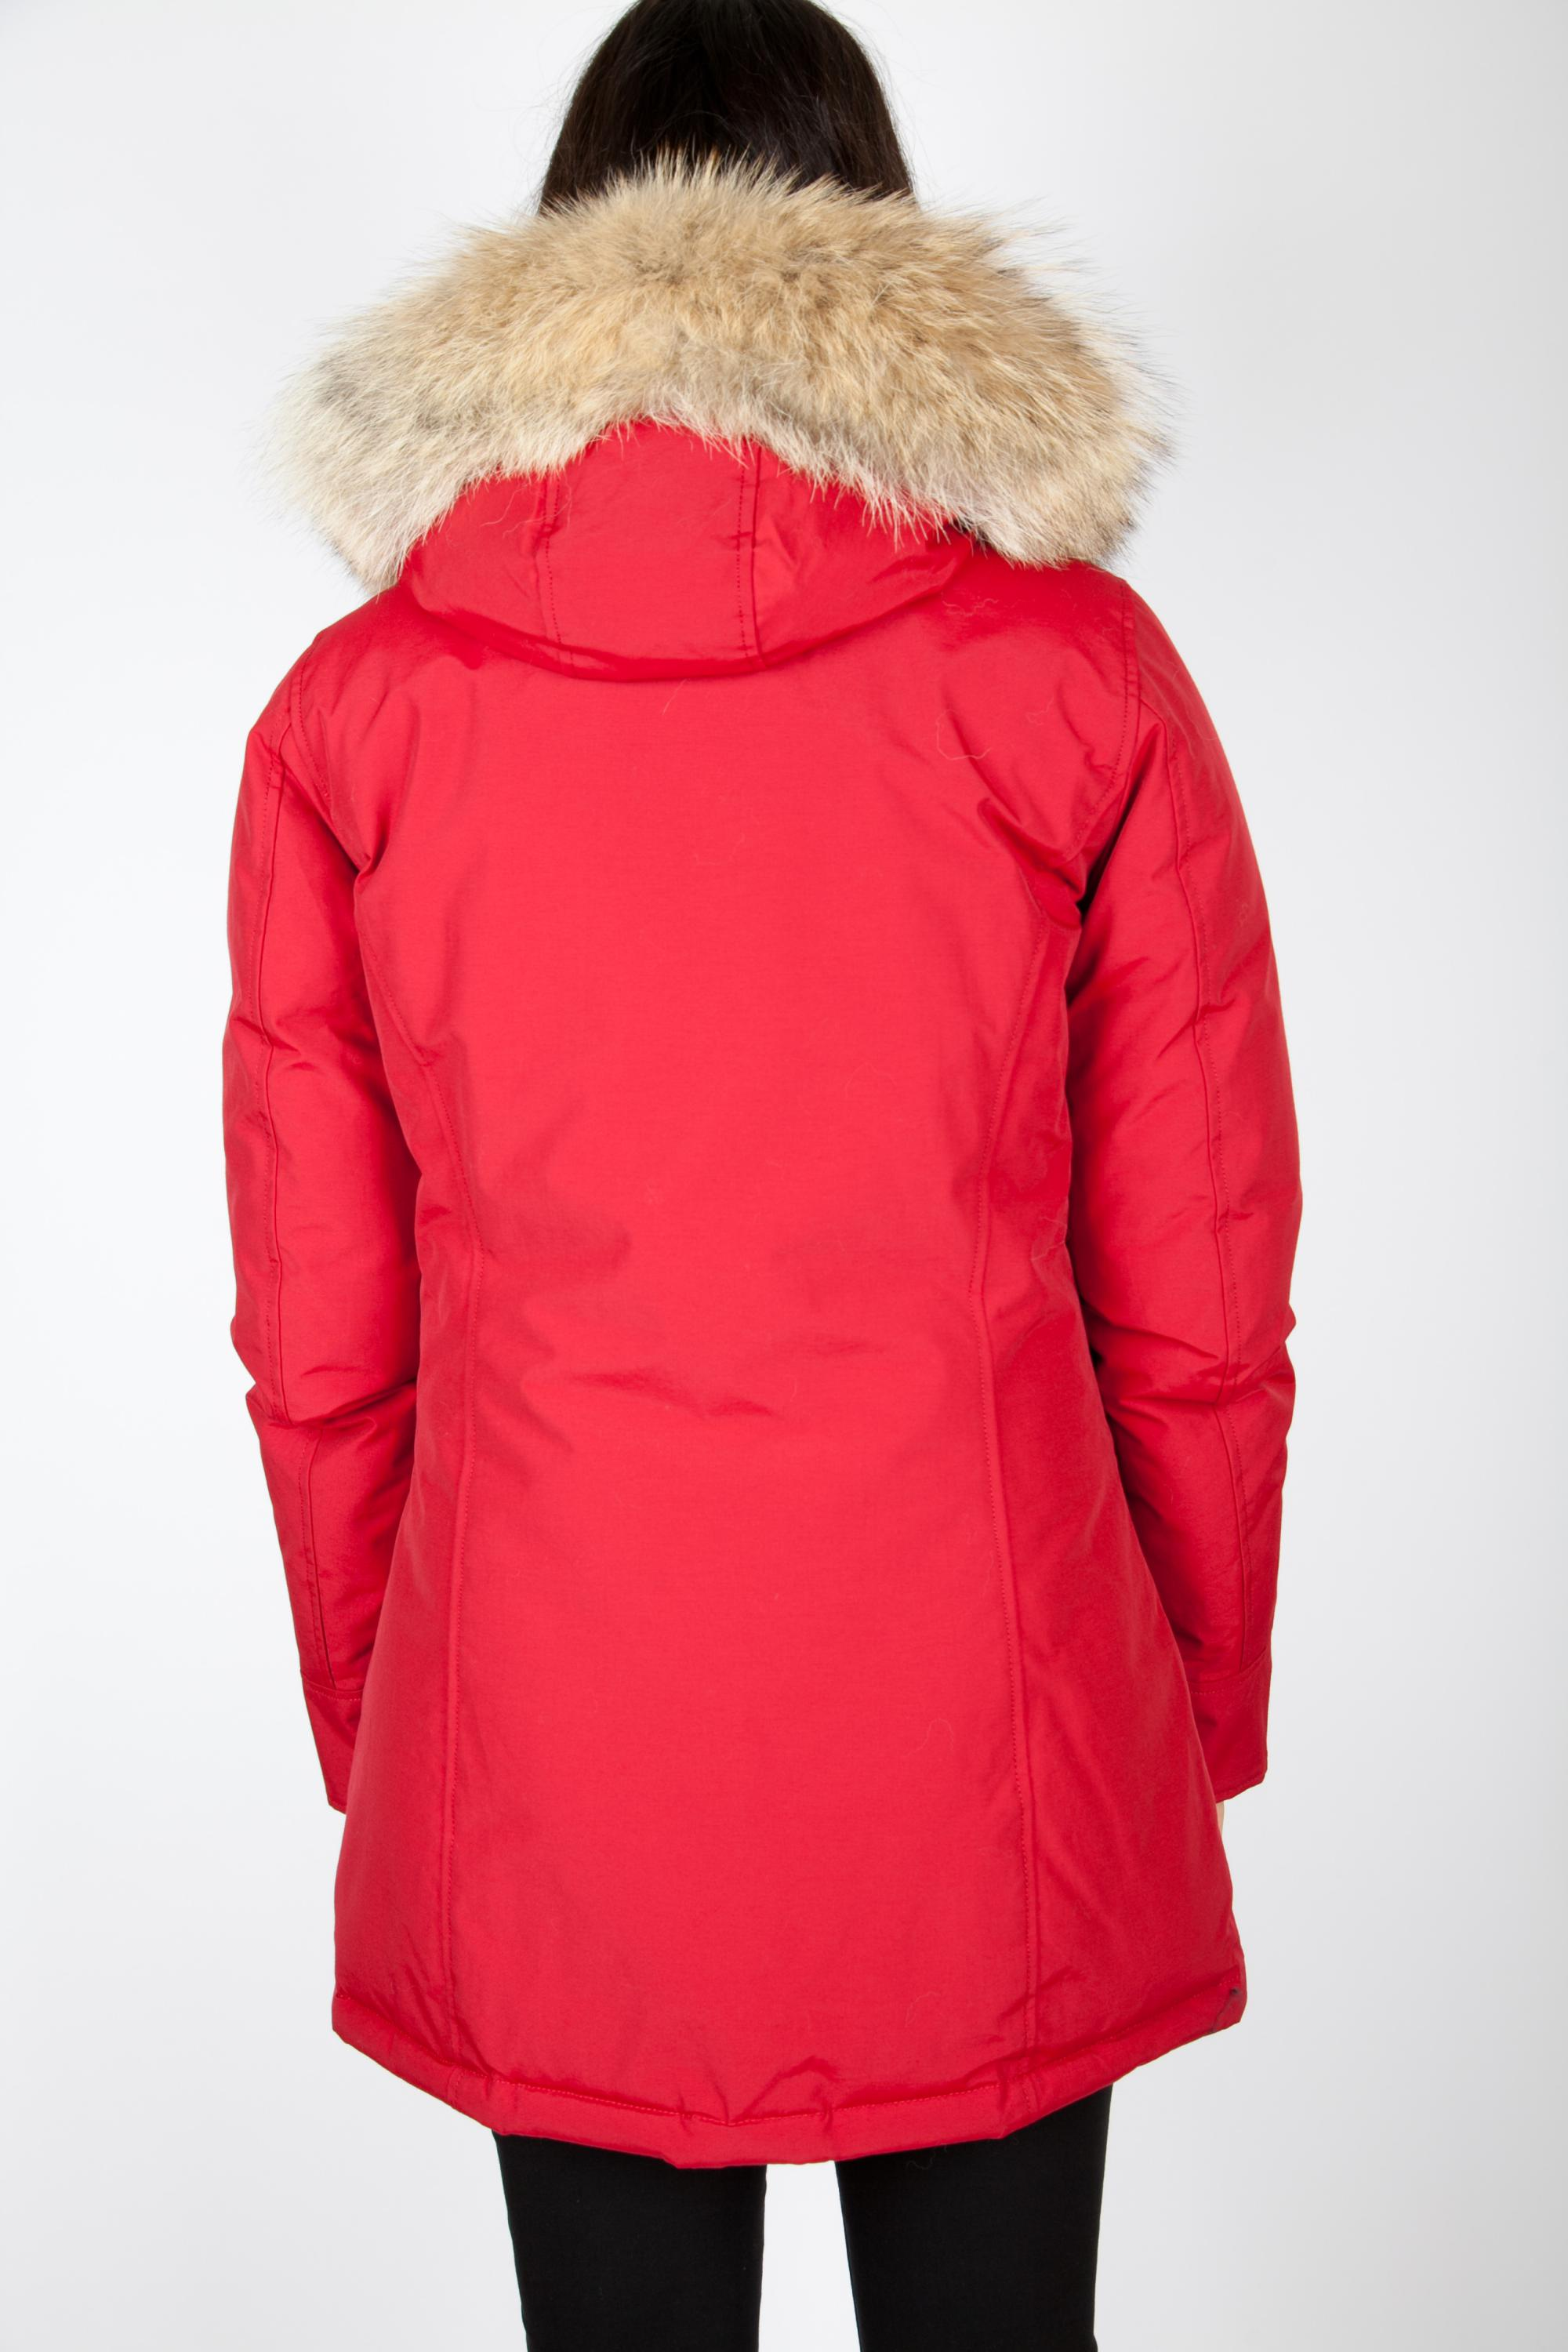 woolrich personals Woolrich has been a trusted name in men's clothing since 1 admiral byrd's historic antarctic exploration woolrich clothing holds up and can still be in great condition decades later.